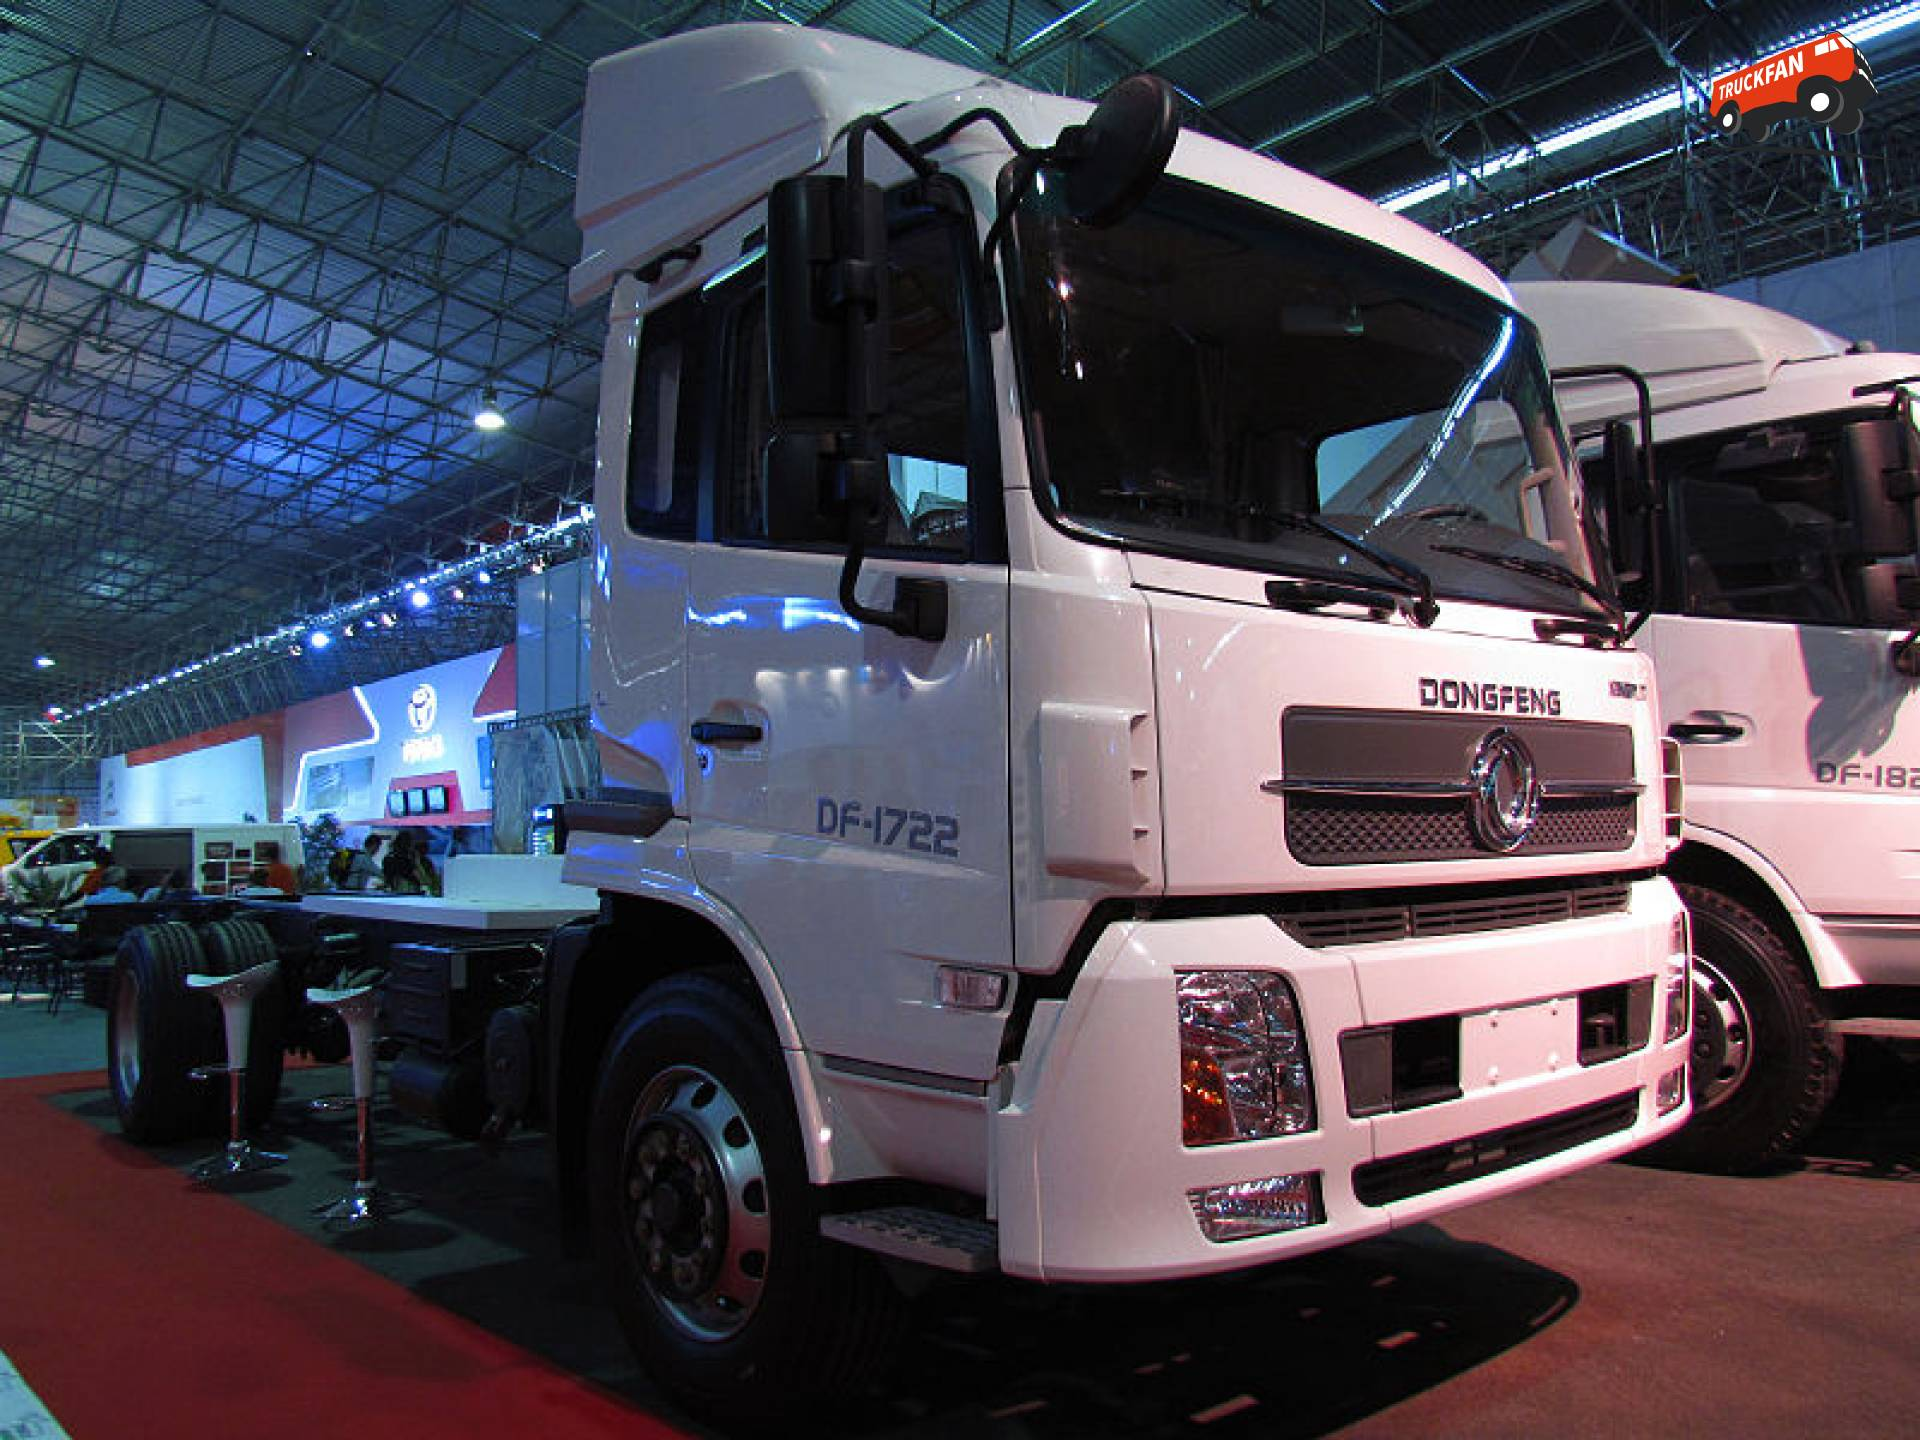 DongFeng DF